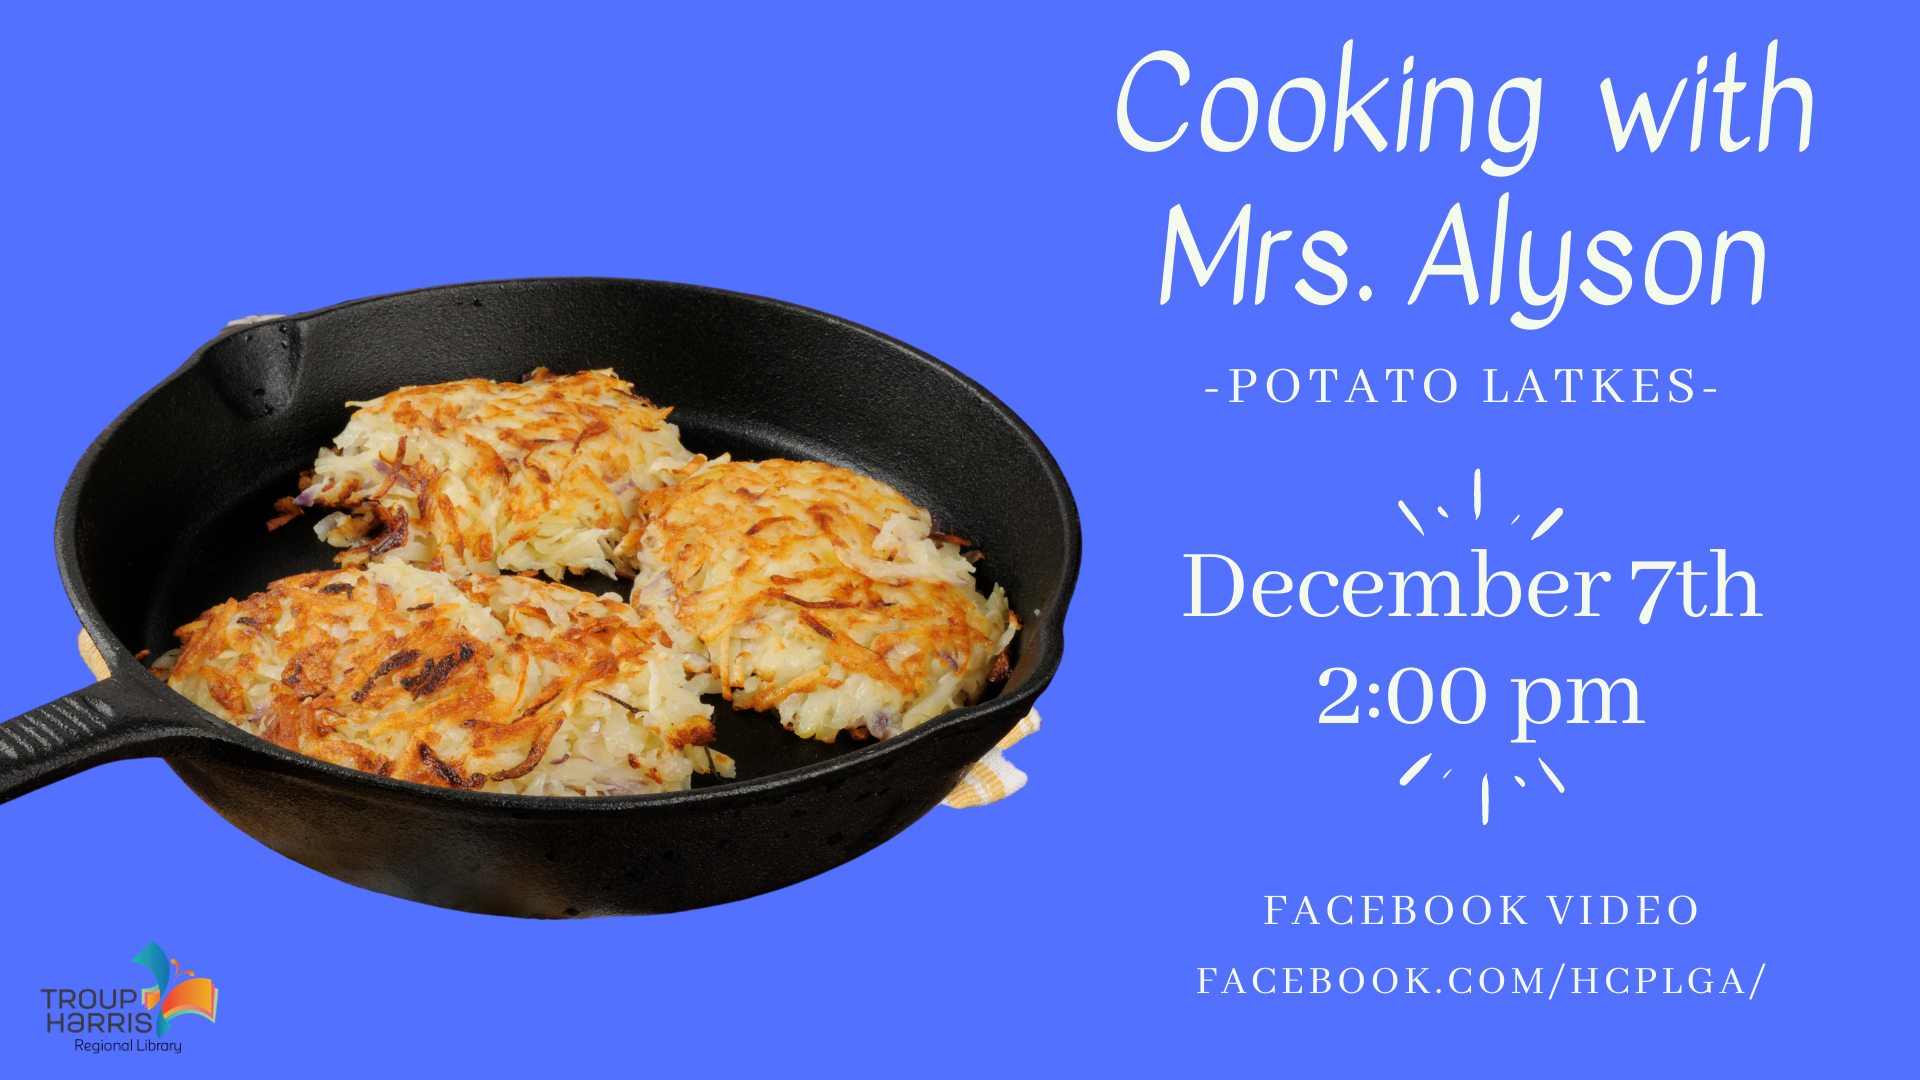 Cooking with Alyson - How to Make Potato Latkes, December 7, 2 pm Facebook Video